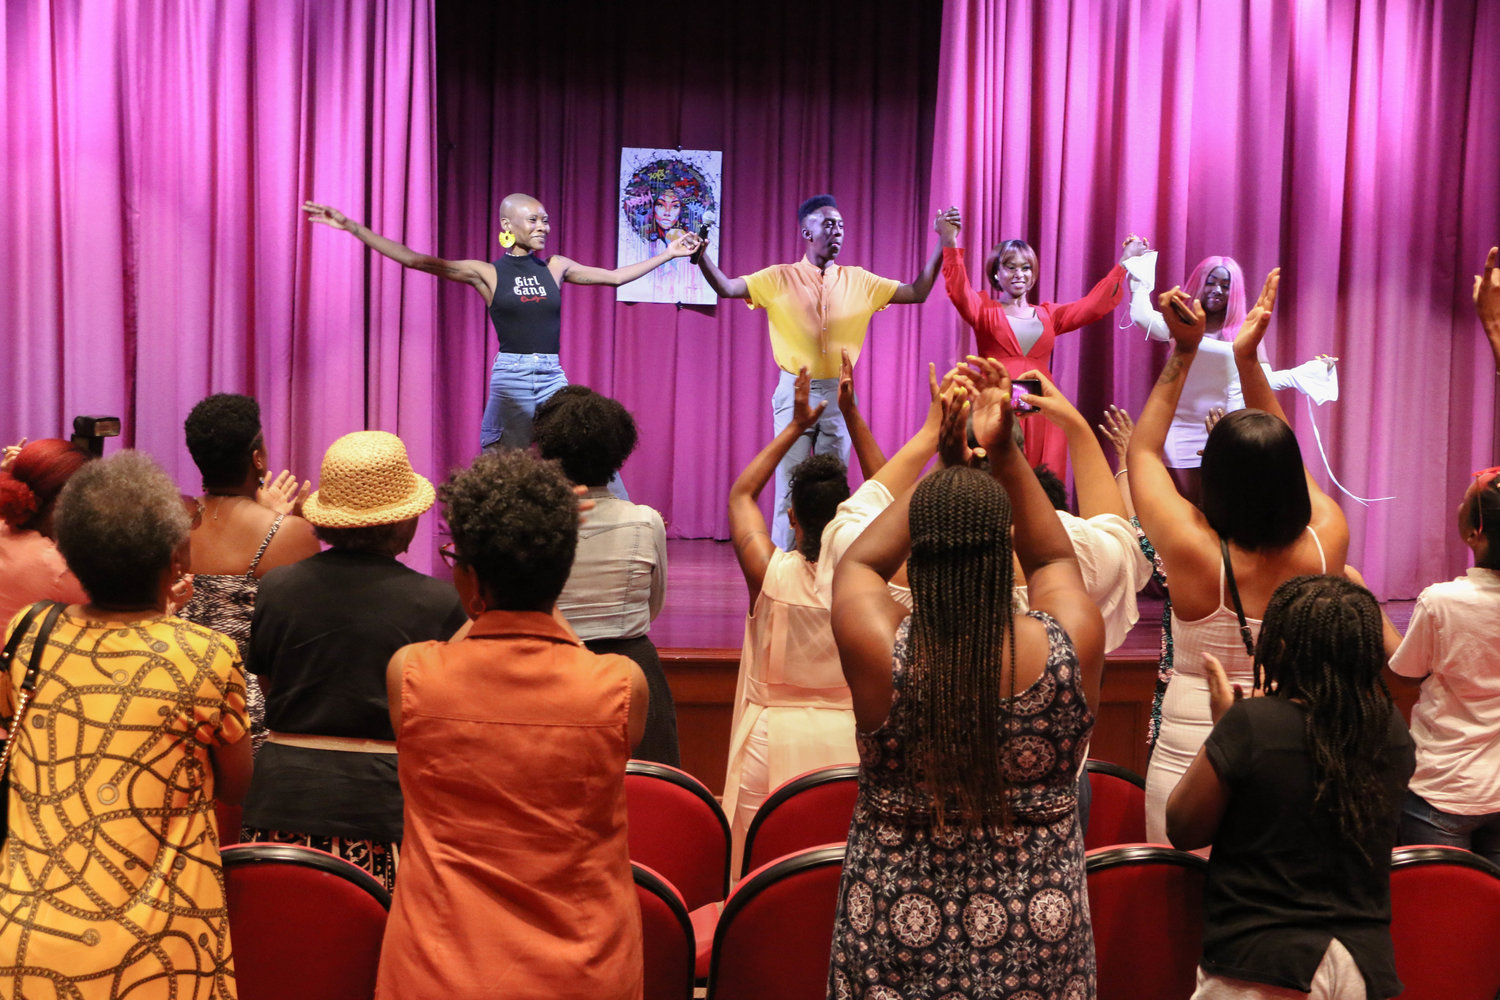 The performers and organizer Chris Banks, second from left, received a standing ovation after their performances.